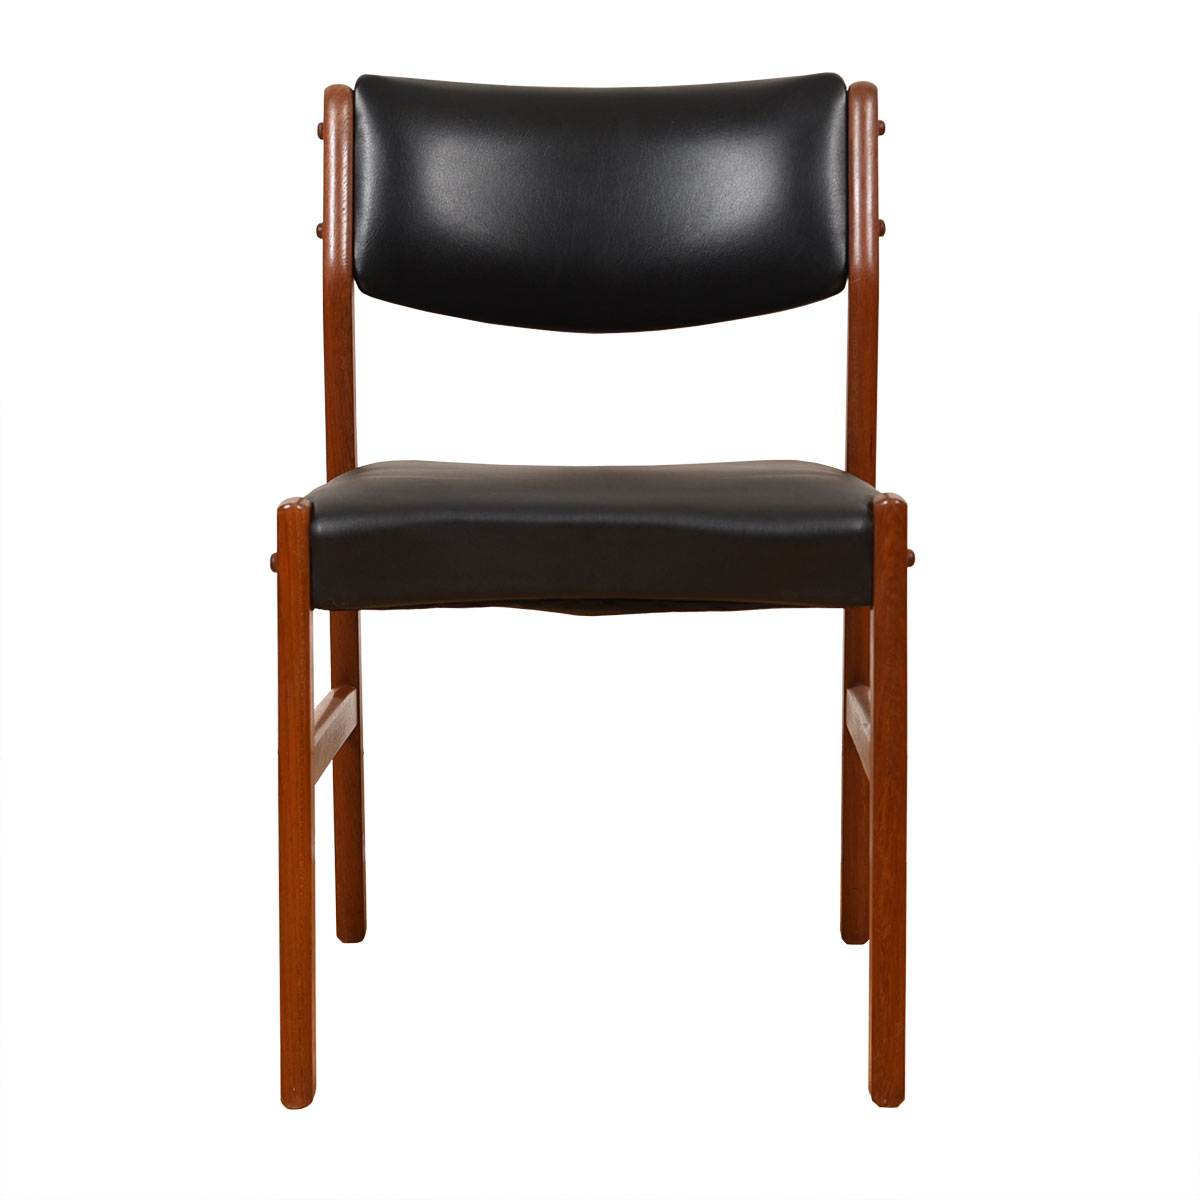 Single Danish Modern Teak + Black Upholstered Chair